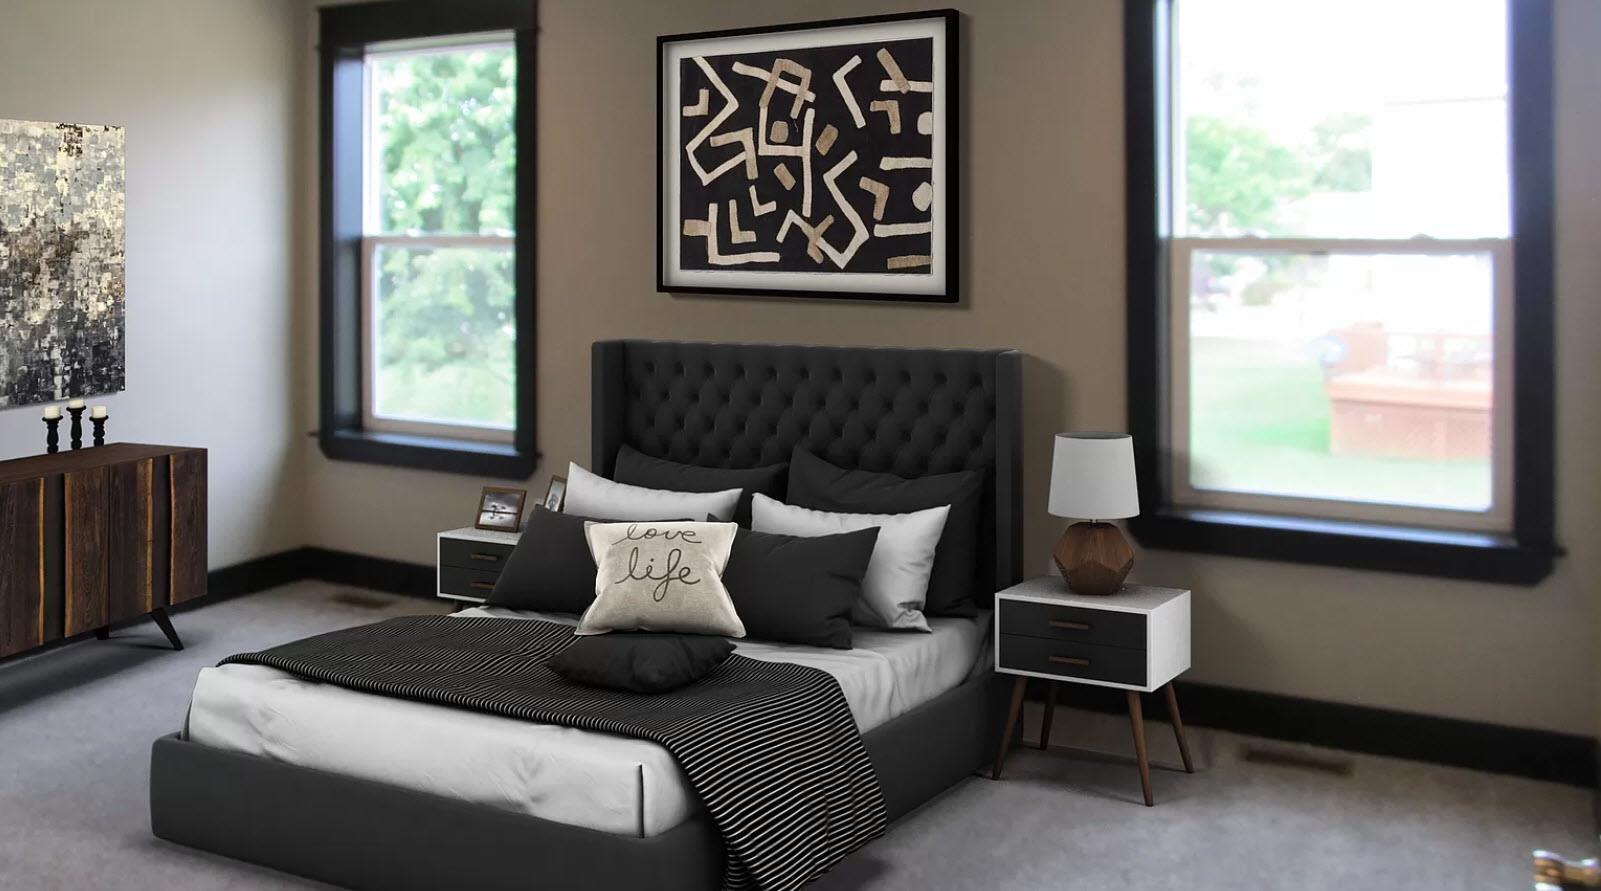 Bedroom featured in the Stanford IV By Oak Ridge Homes in Lansing, MI